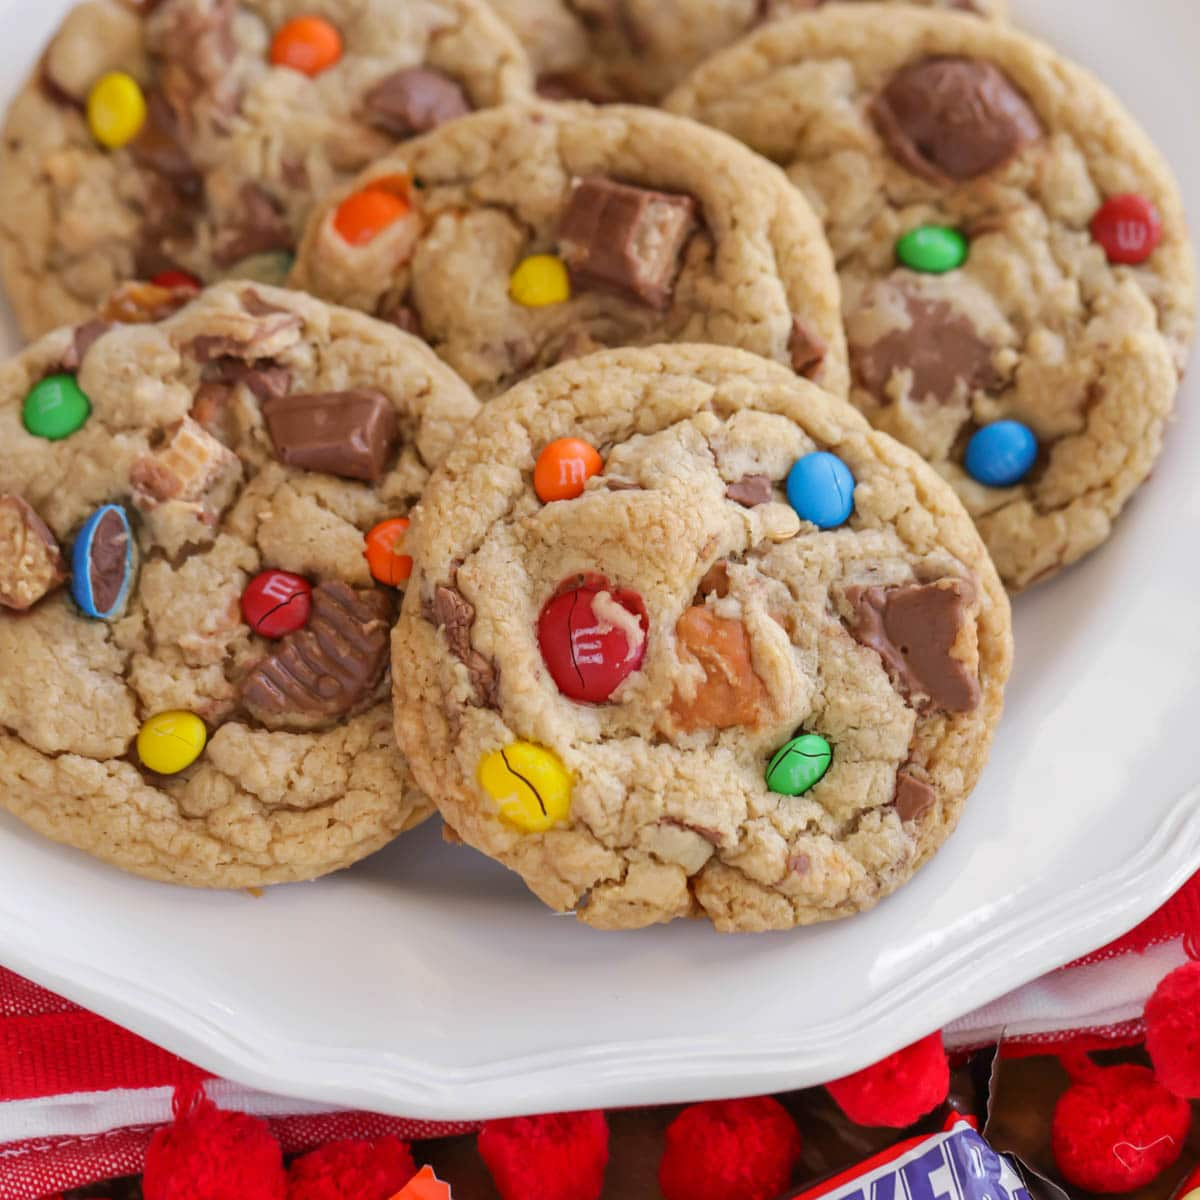 Candy bar cookies on a white plate